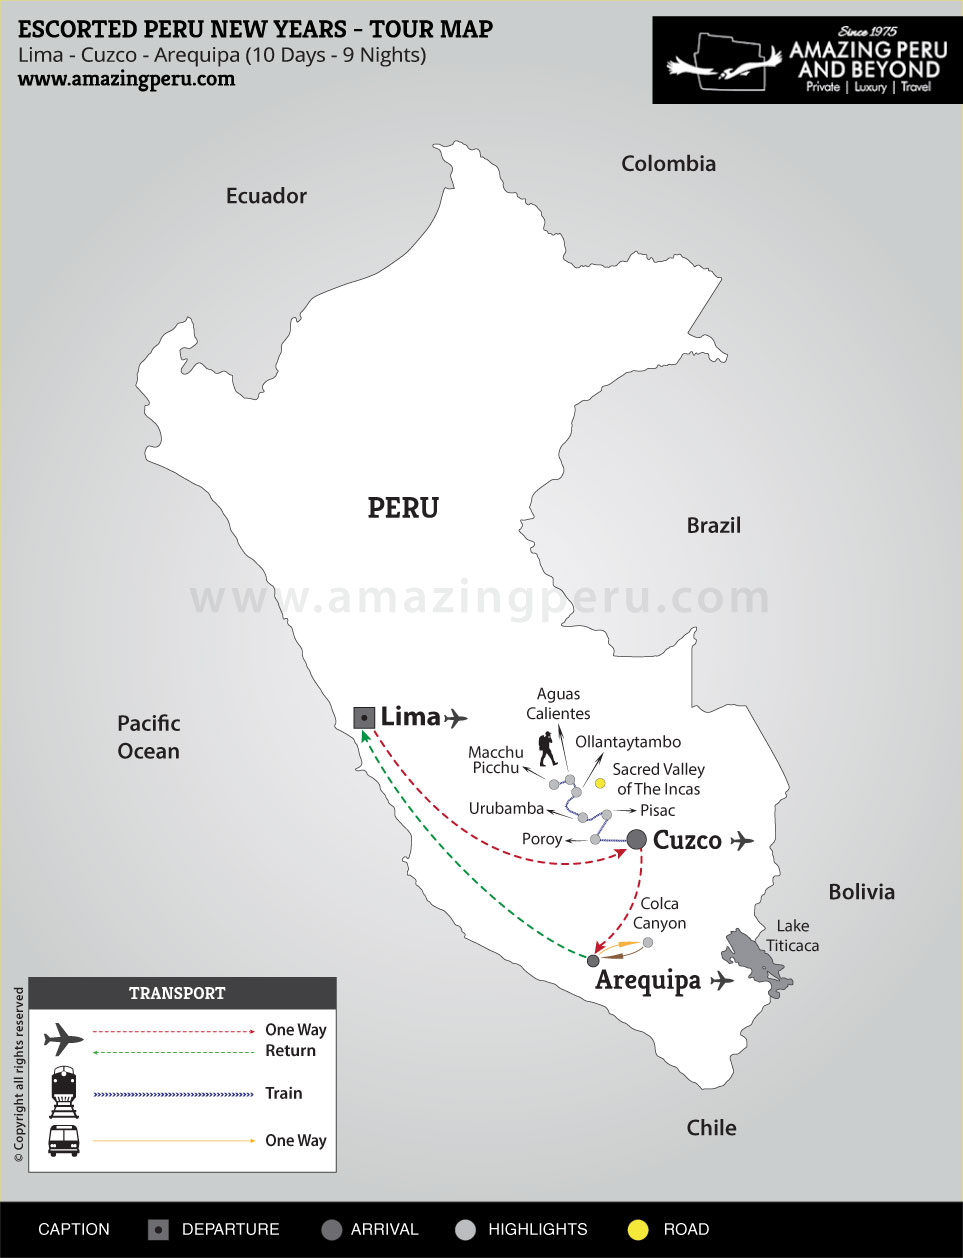 2017-18 Escorted Peru New Years 2 - 10 days / 9 nights.